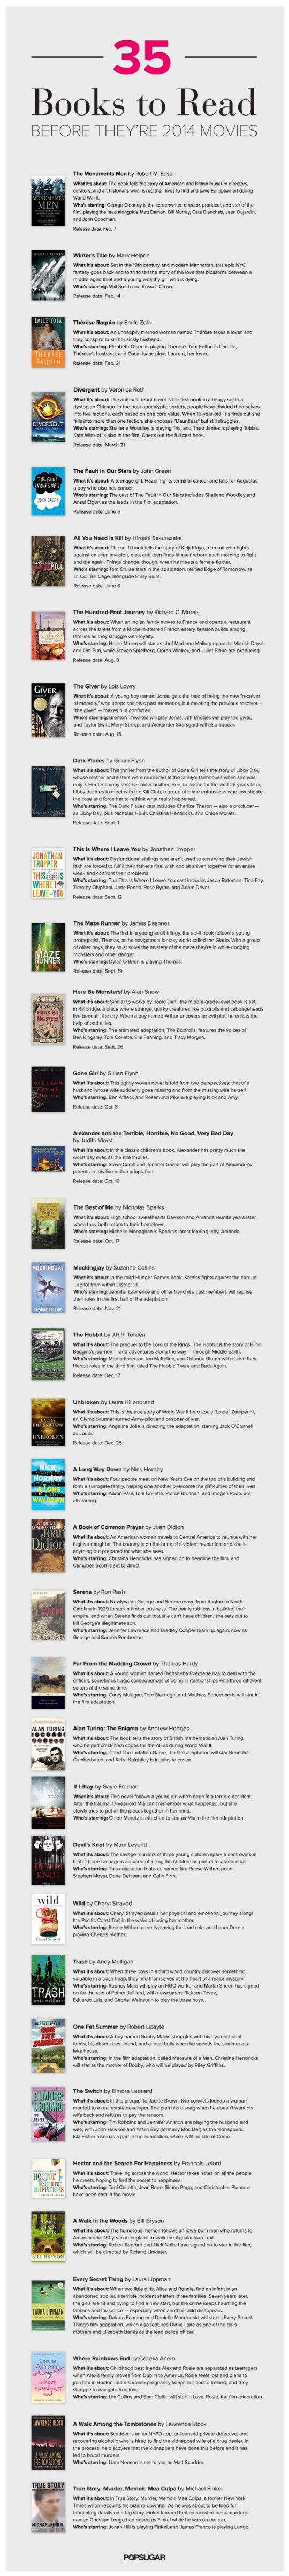 35 #books to read before they are 2014 movies #infographic. #DarkPlaces & #GoneGirl YES!!!!